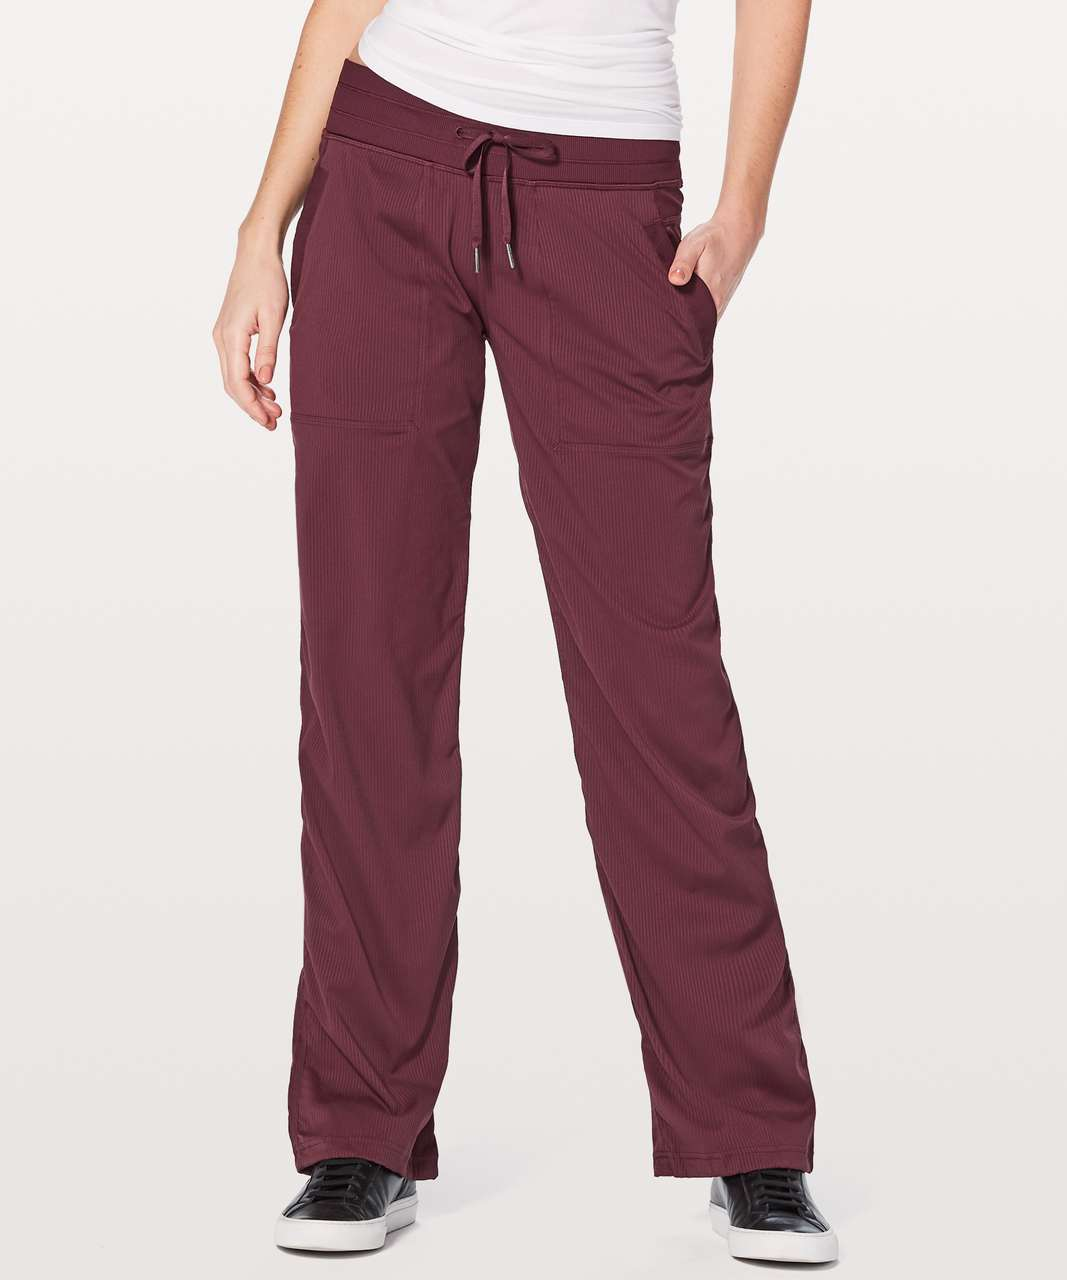 "Lululemon Dance Studio Pant III (Regular) *Unlined 32"" - Redwood"